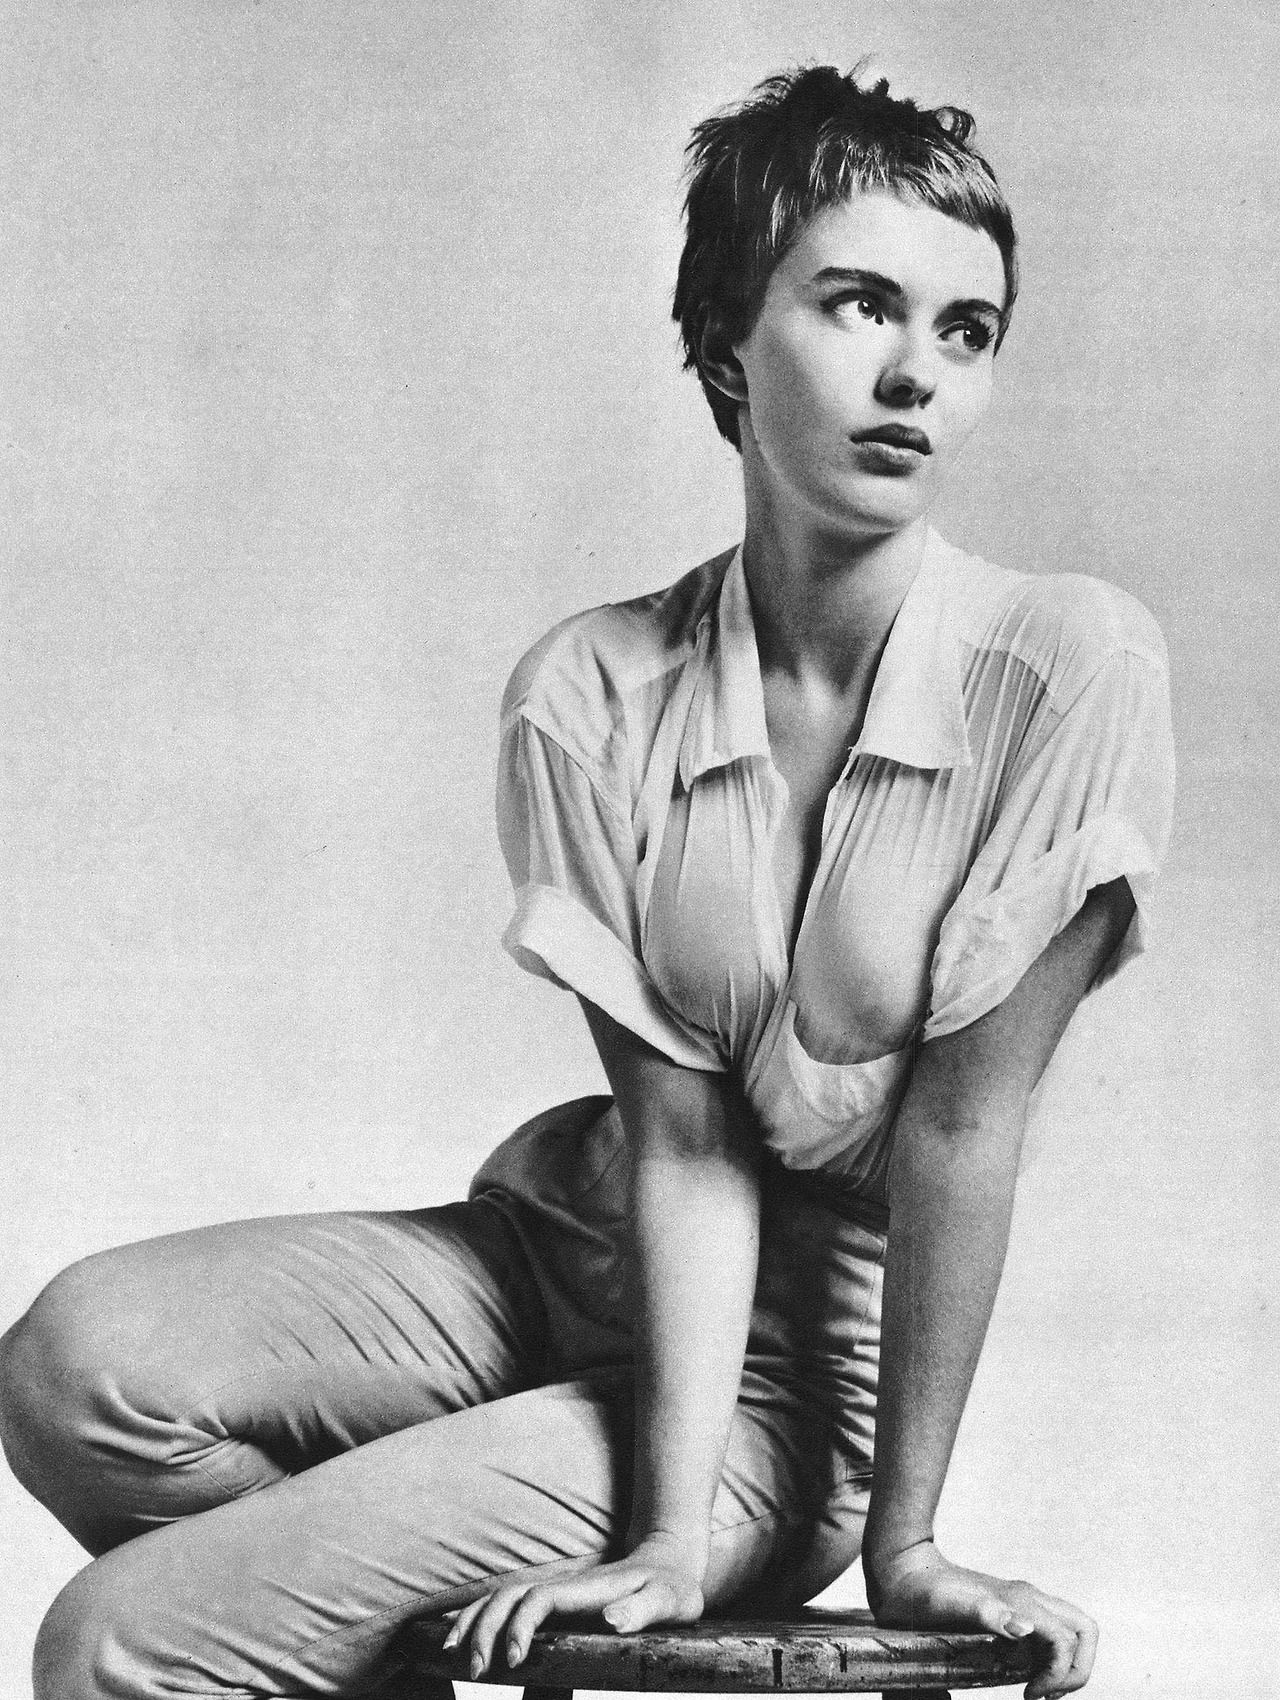 https://24femmespersecond.files.wordpress.com/2017/03/jean-seberg-repost.jpeg